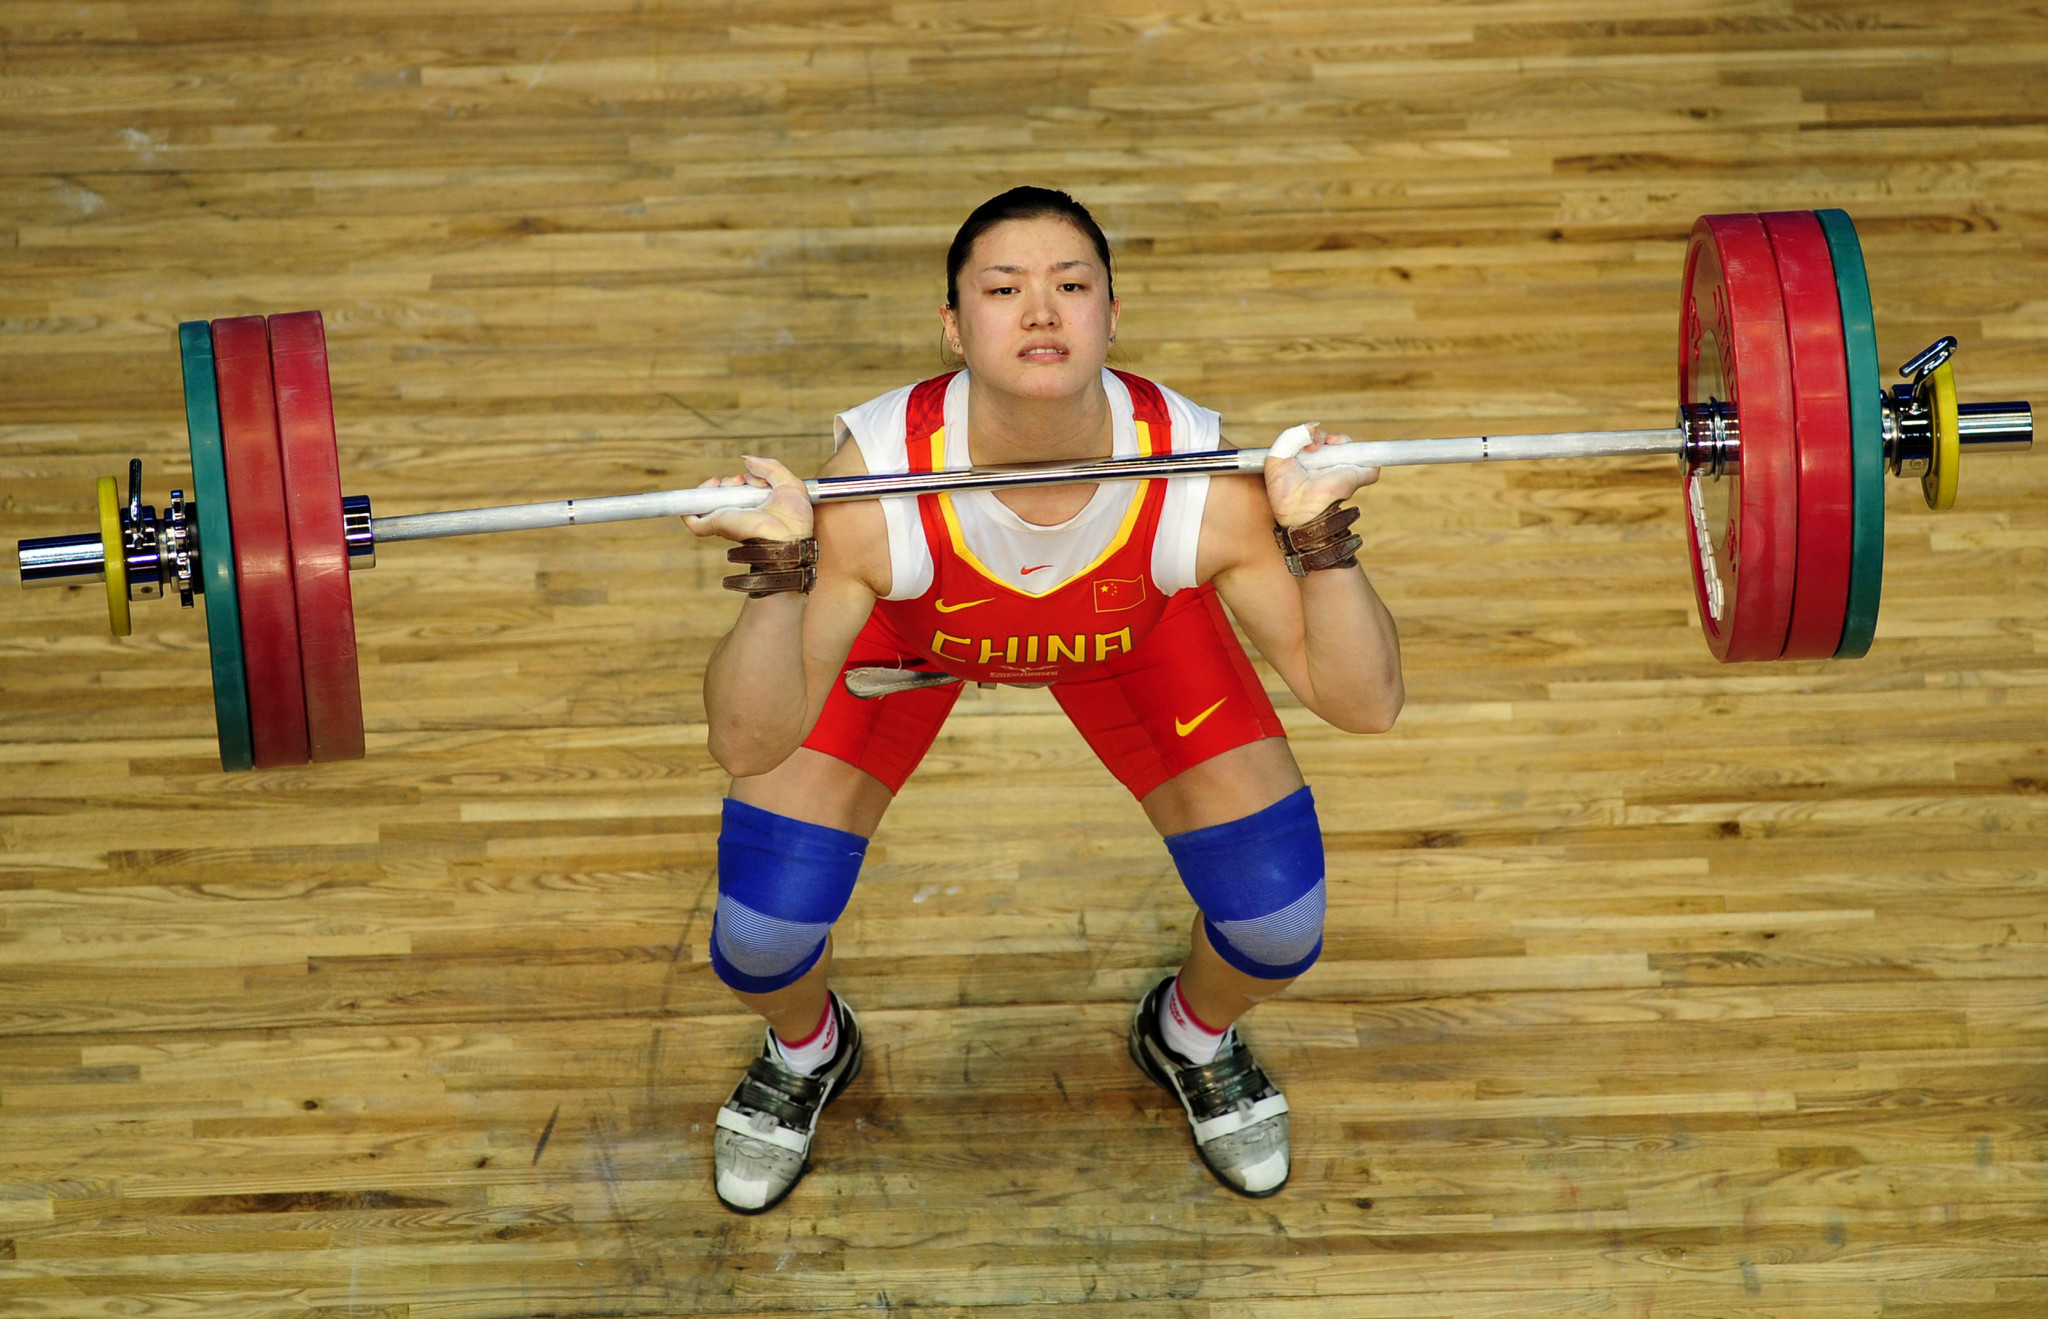 Cao Lei was one of three Chinese gold medallist stripped of their Beijing 2008 titles for doping ©Getty Images